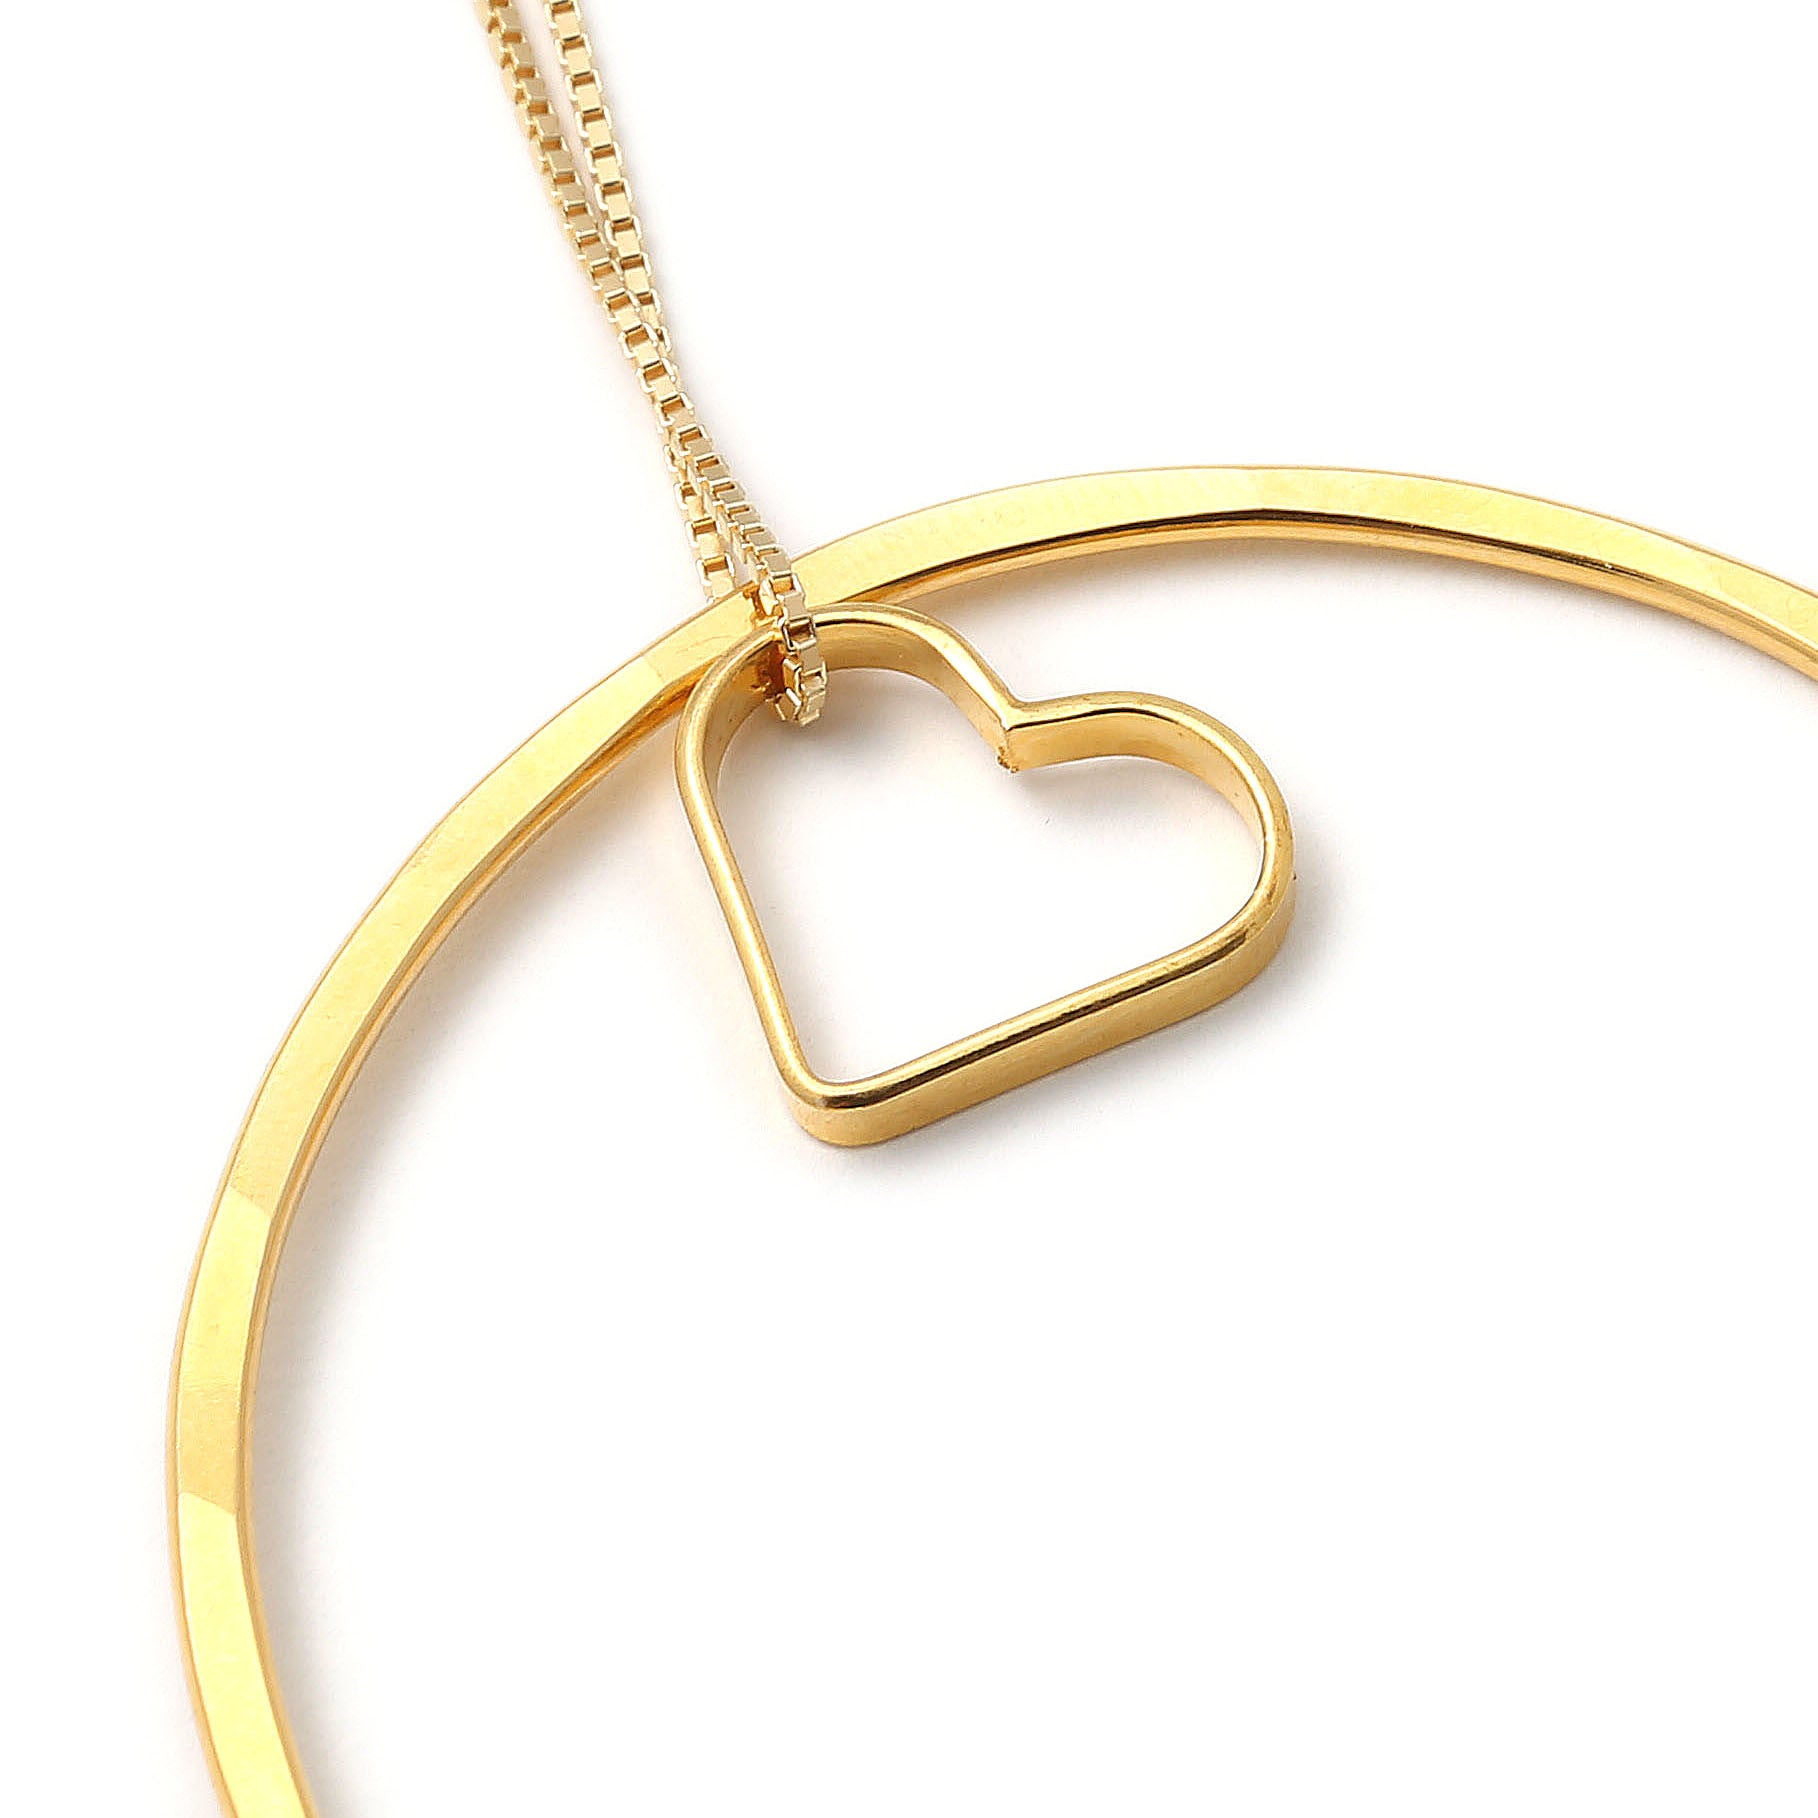 Necklaces | Gold, Silver & Statement Heart Jewelry | SEEME.ORG ...